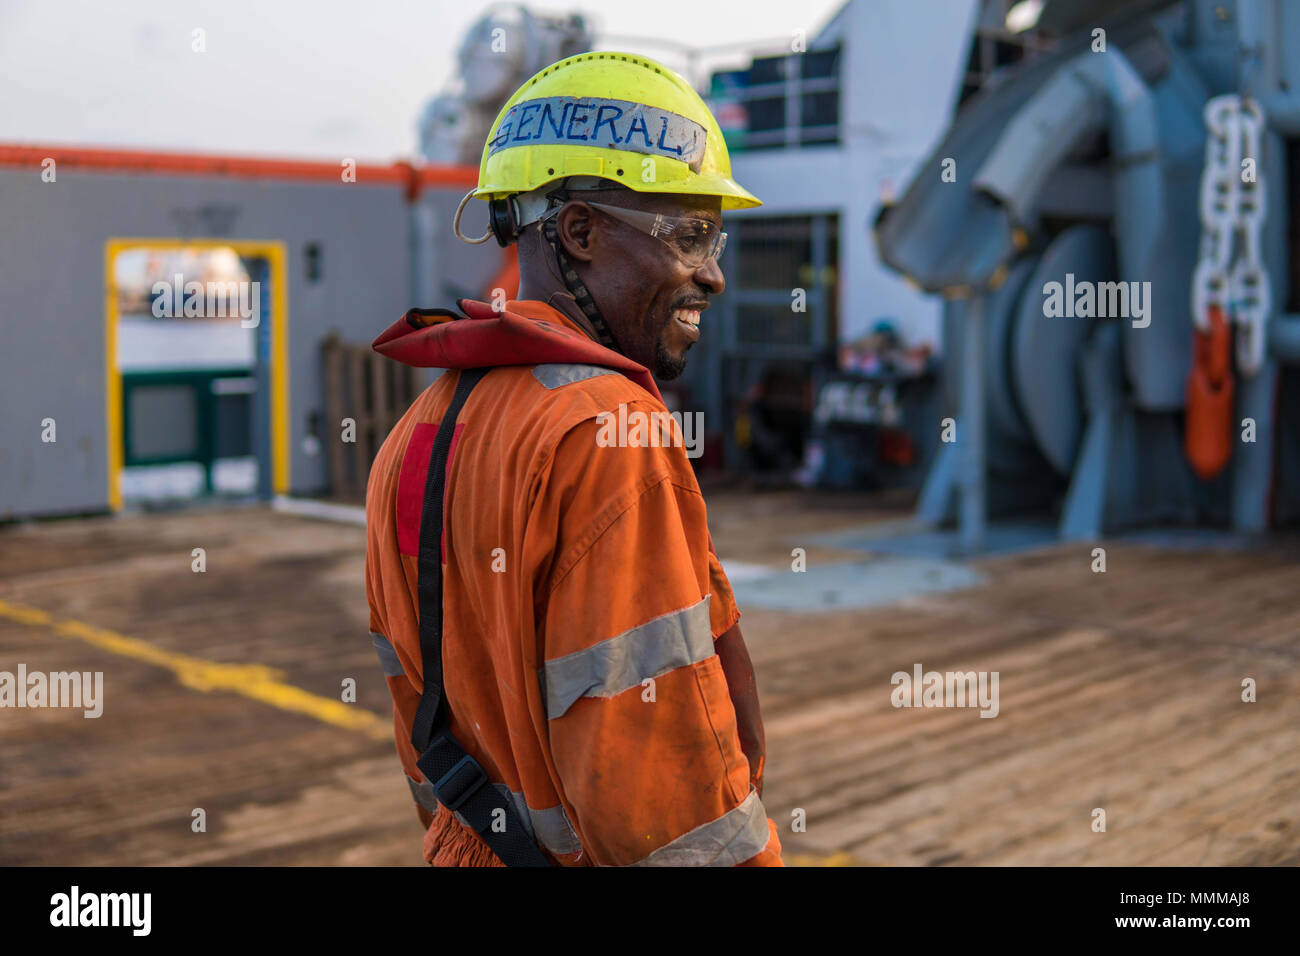 Head of AB able seamen - Bosun on deck of offshore vessel or